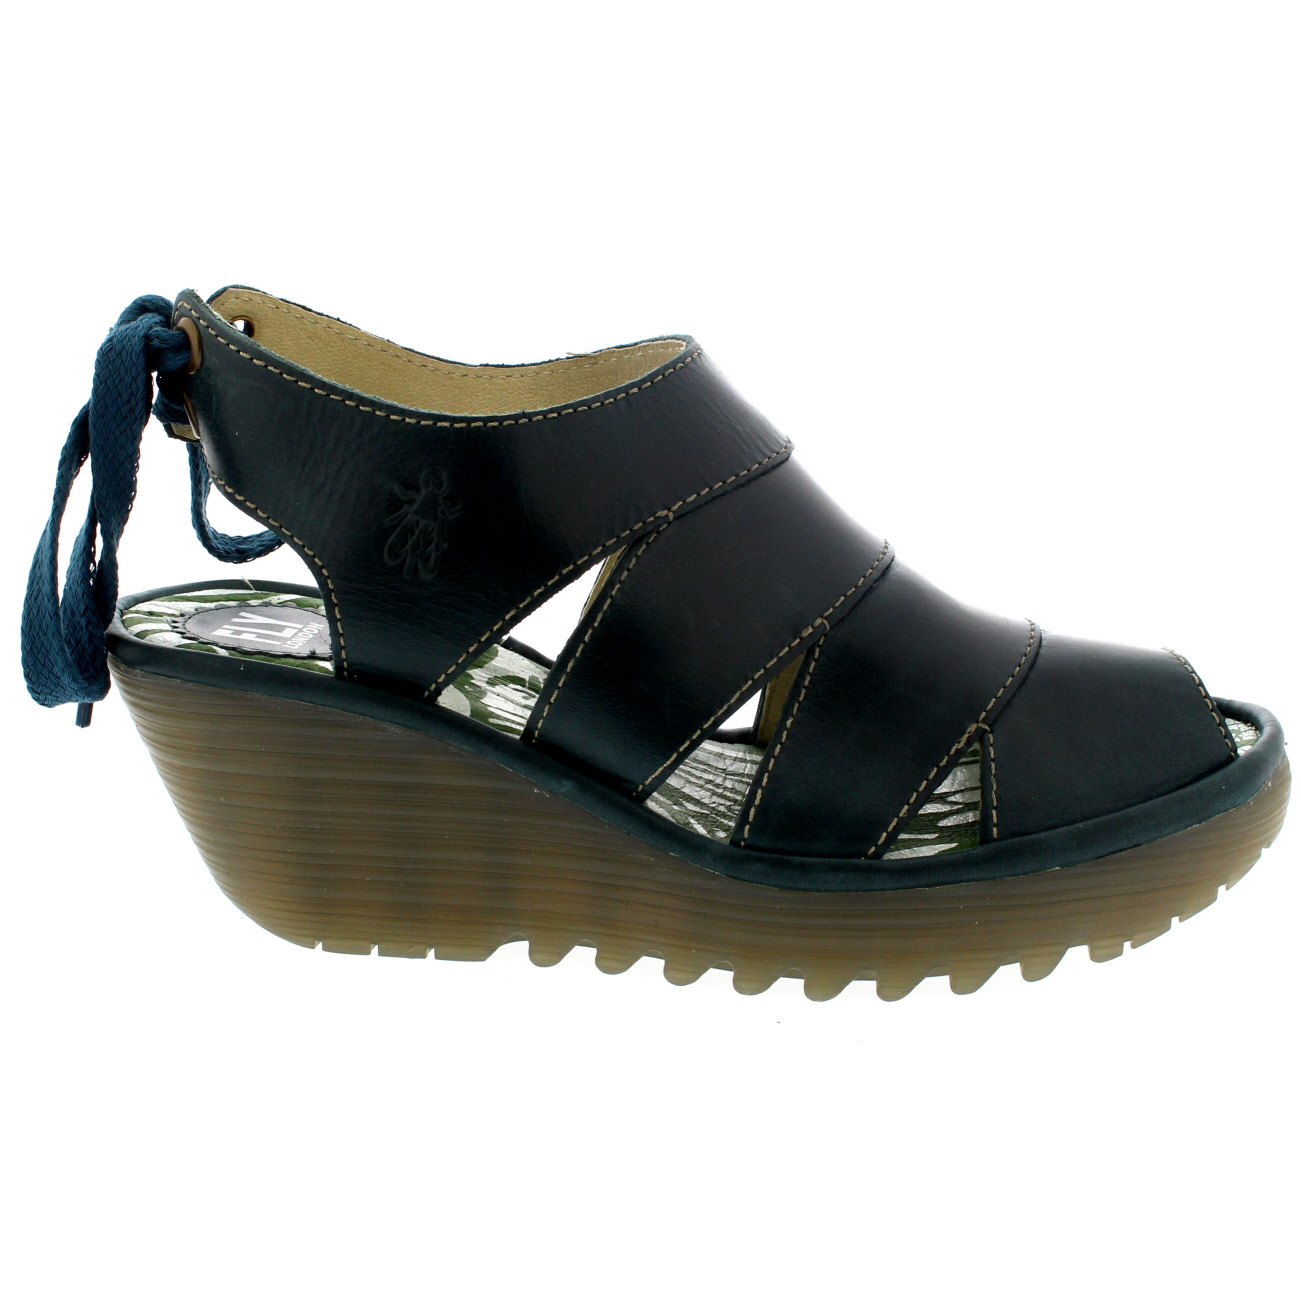 ed92e9e443 ... leather lining, rubber sole unit, contrasting stitching, mid wedge heel,  low platform sole, cleated sole unit, peep toe front, cut out inserts, ...